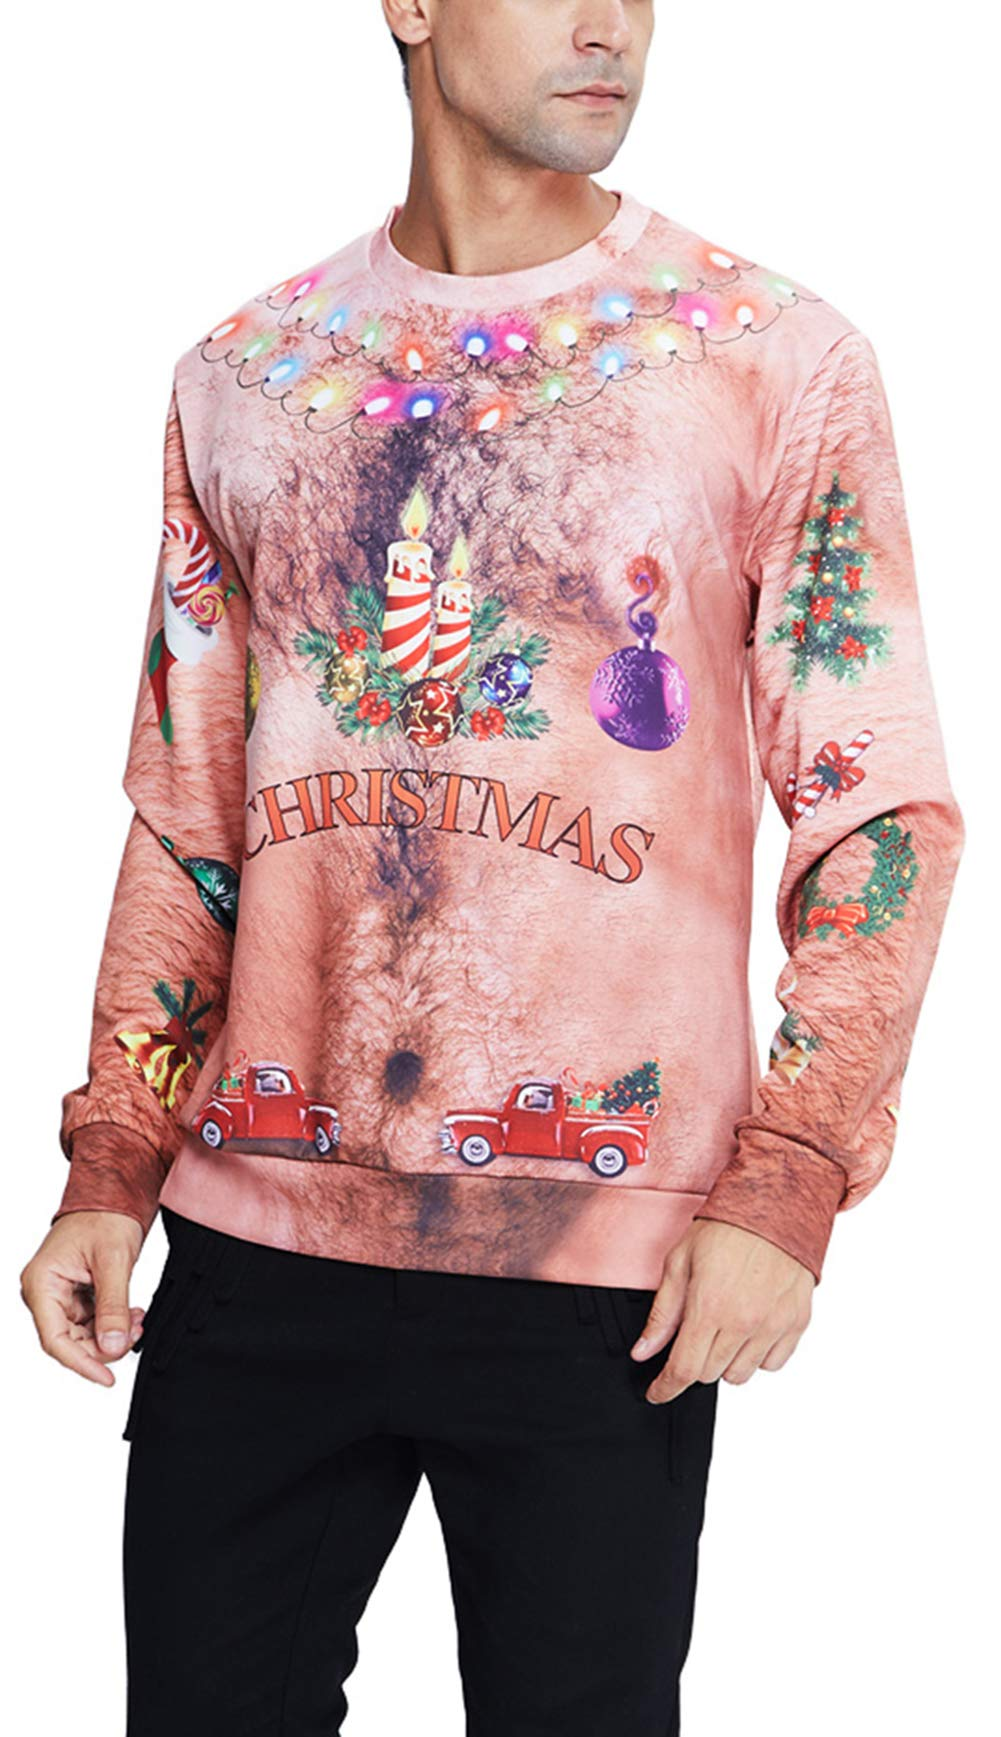 Goodstworld Funny Christmas Hairy Chest Sweater Cool Brown Novelty 3D Xmas Light Necklace Print Pullover Sweater Shirts Blouse Ugly Graphic Xmas Sweatshirts for Xmas Party Large